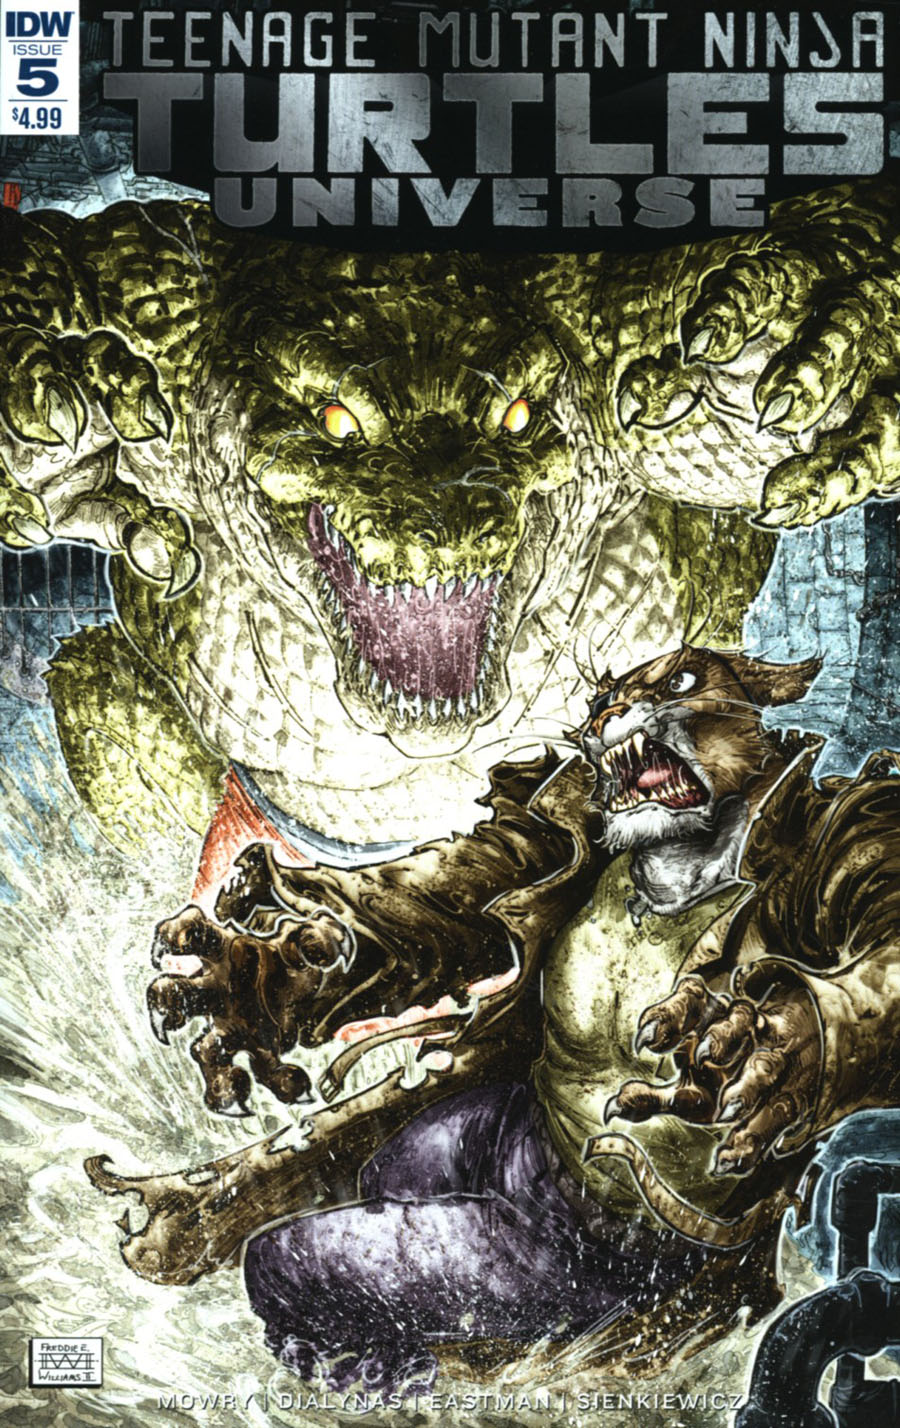 Teenage Mutant Ninja Turtles Universe #5 Cover A Regular Freddie Williams Cover